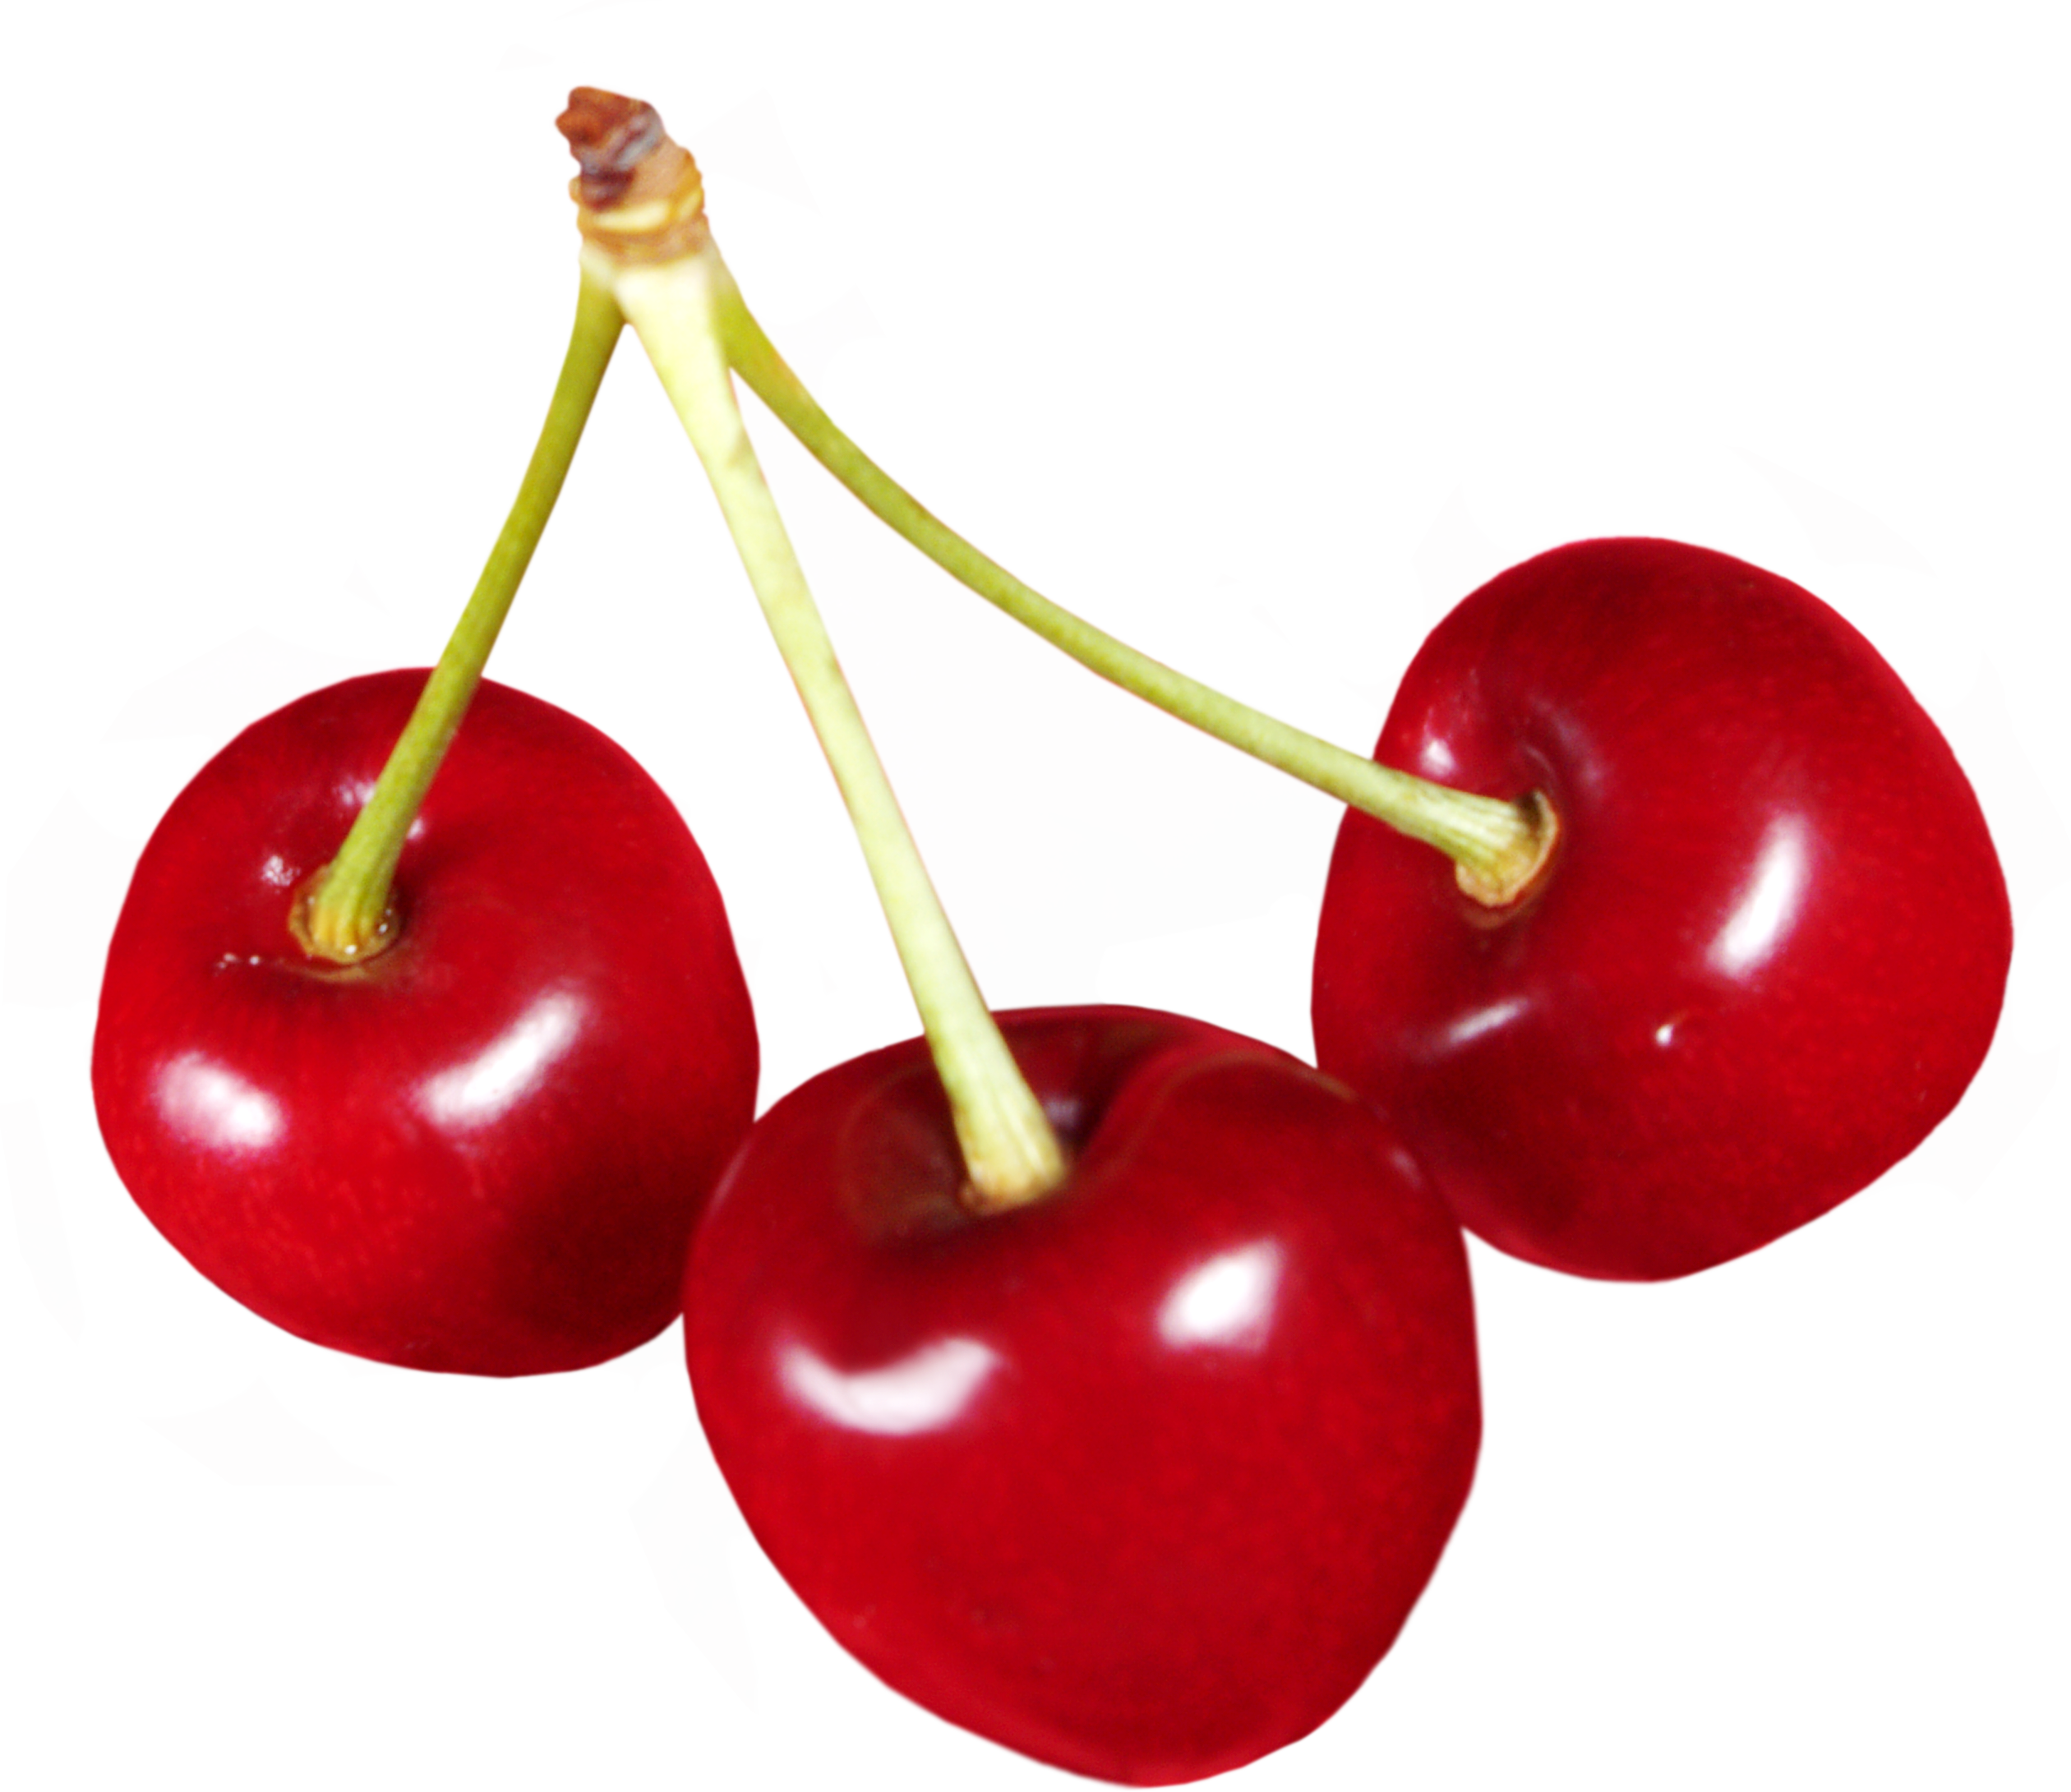 graphic free stock Hq cherry png transparent. Cherries clipart four.